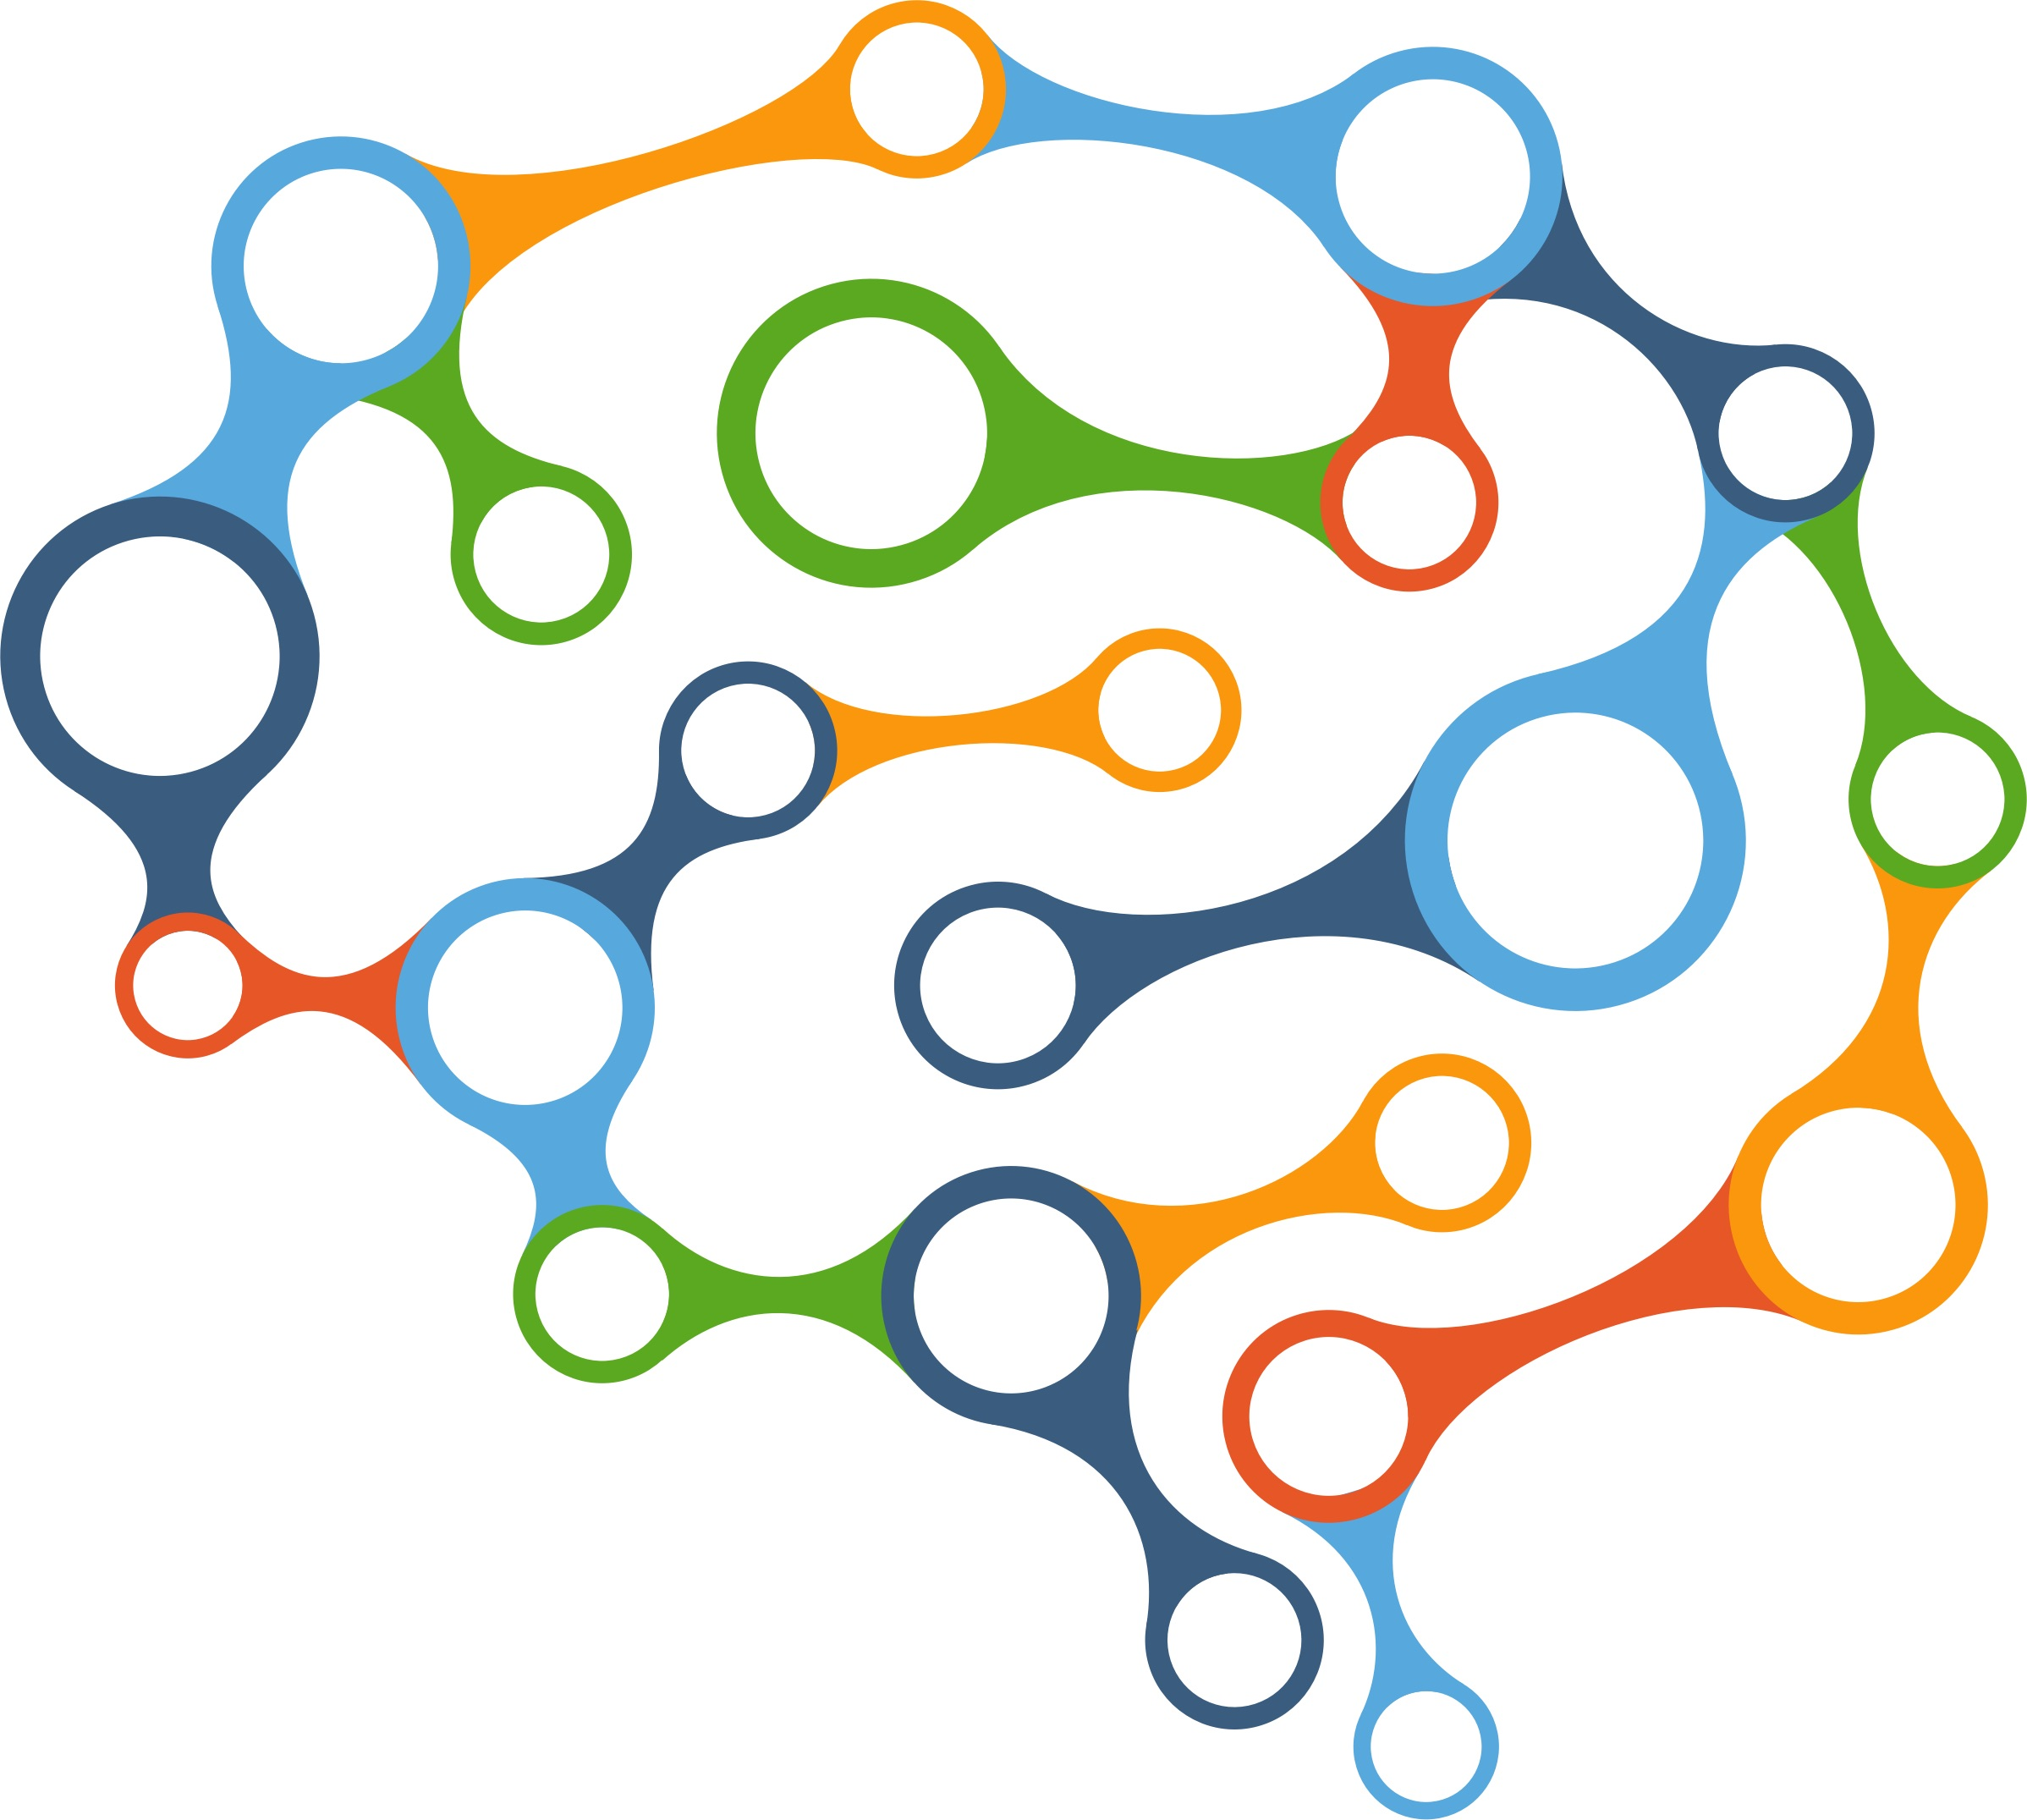 colorful-brain-map-vector-clipart.jpg